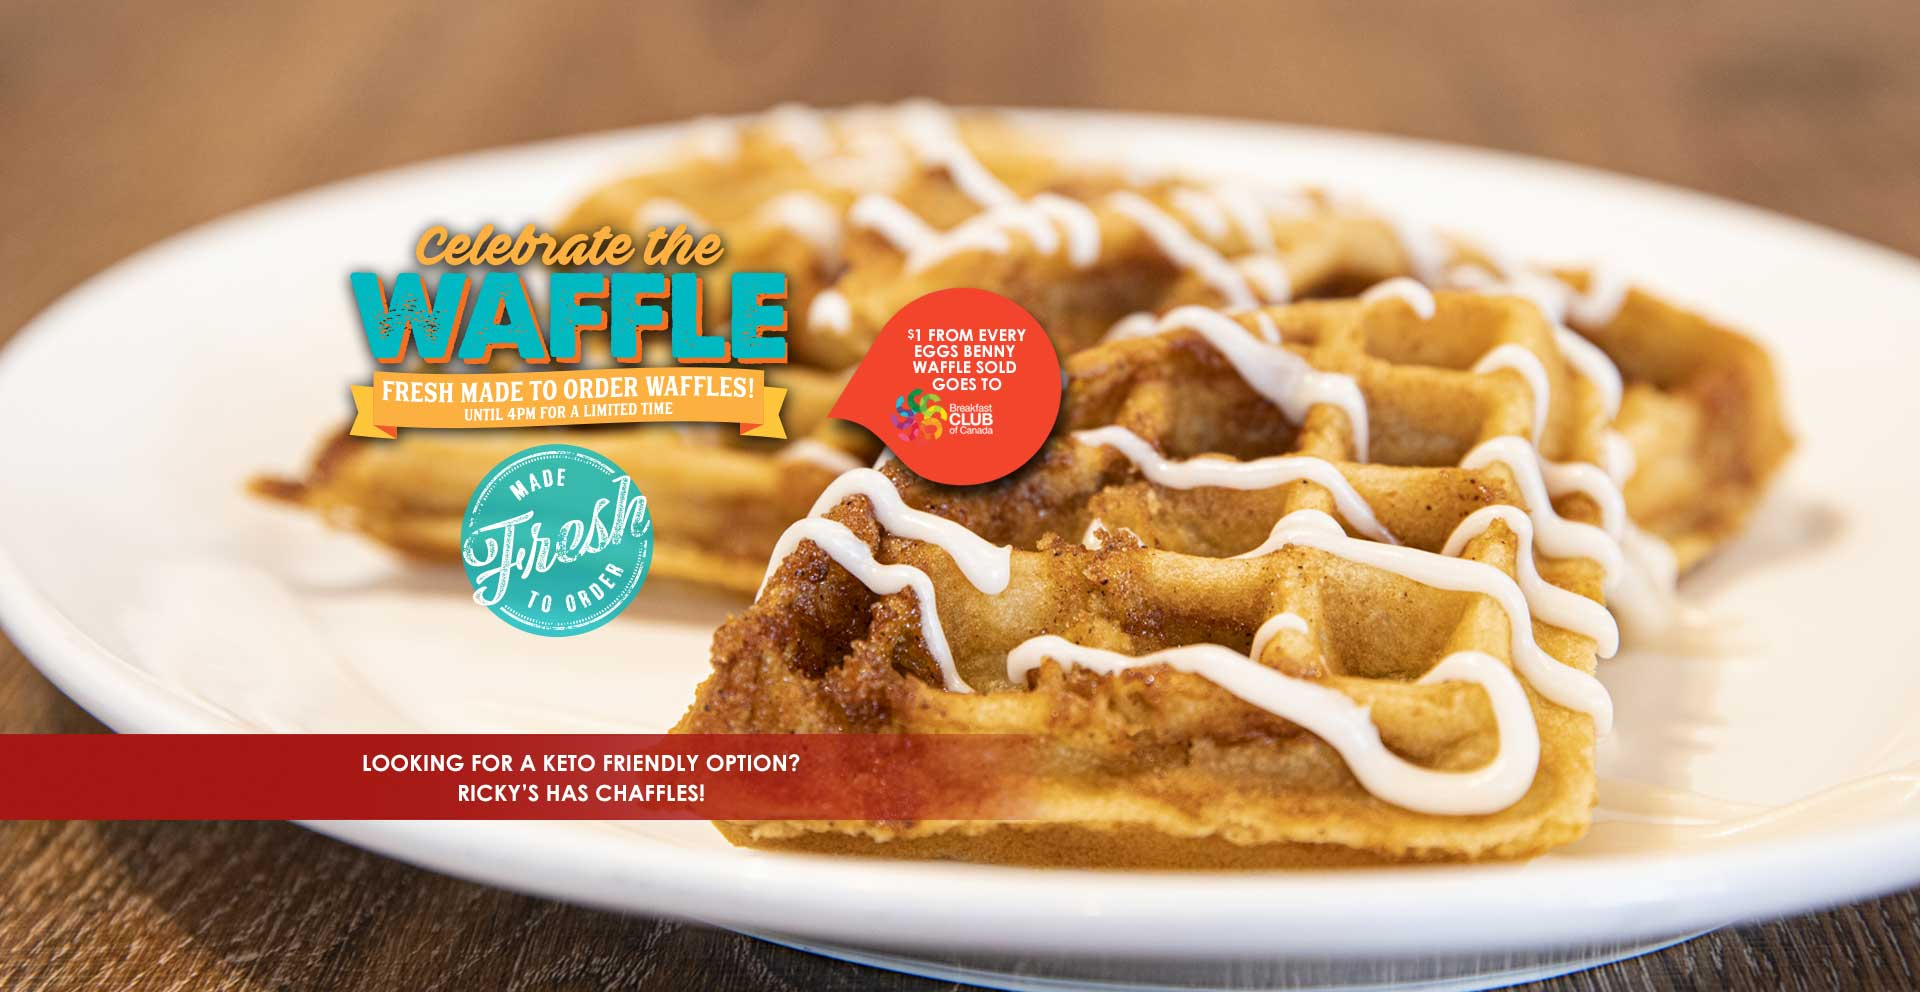 Indulge in the classic goodness of a fresh, made to order Waffle! Choose from sweet like our Cinnamon Bun Waffles to savoury like our Spicy Eggs Benny Waffle. We've got the Waffle for you! But hurry – for a limited time until 4pm.